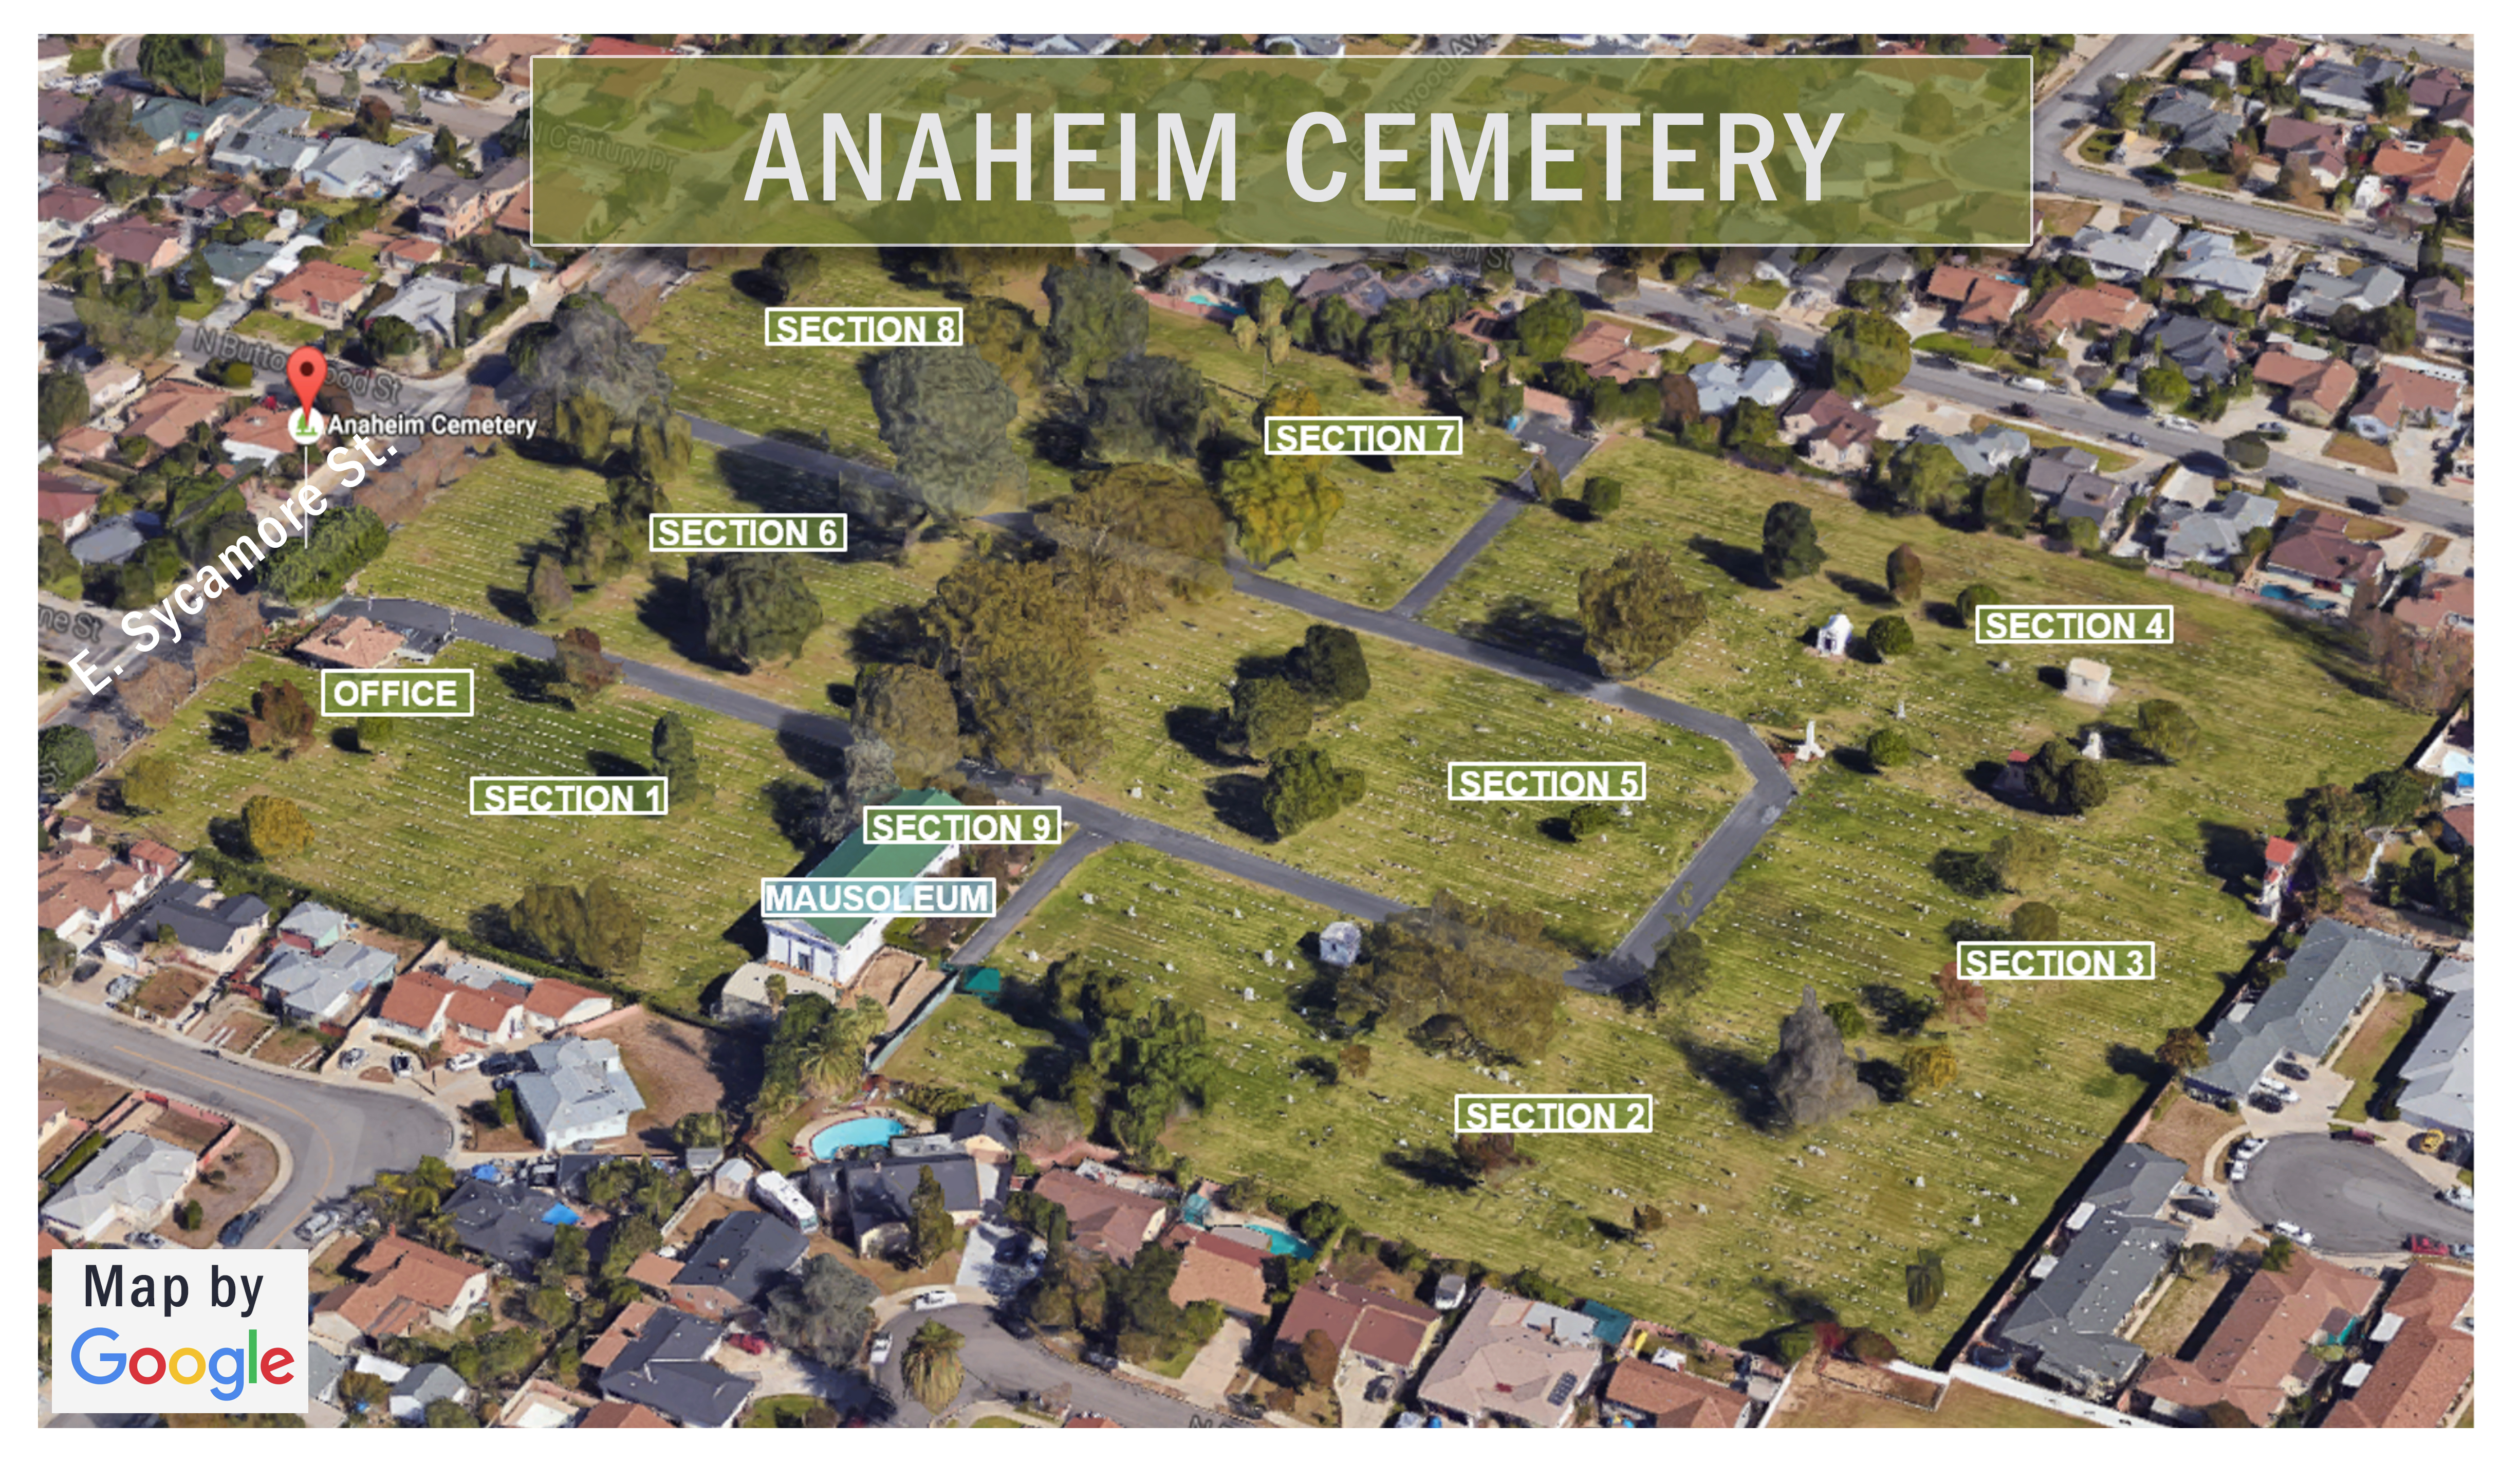 this links to a color map of Anaheim cemetery